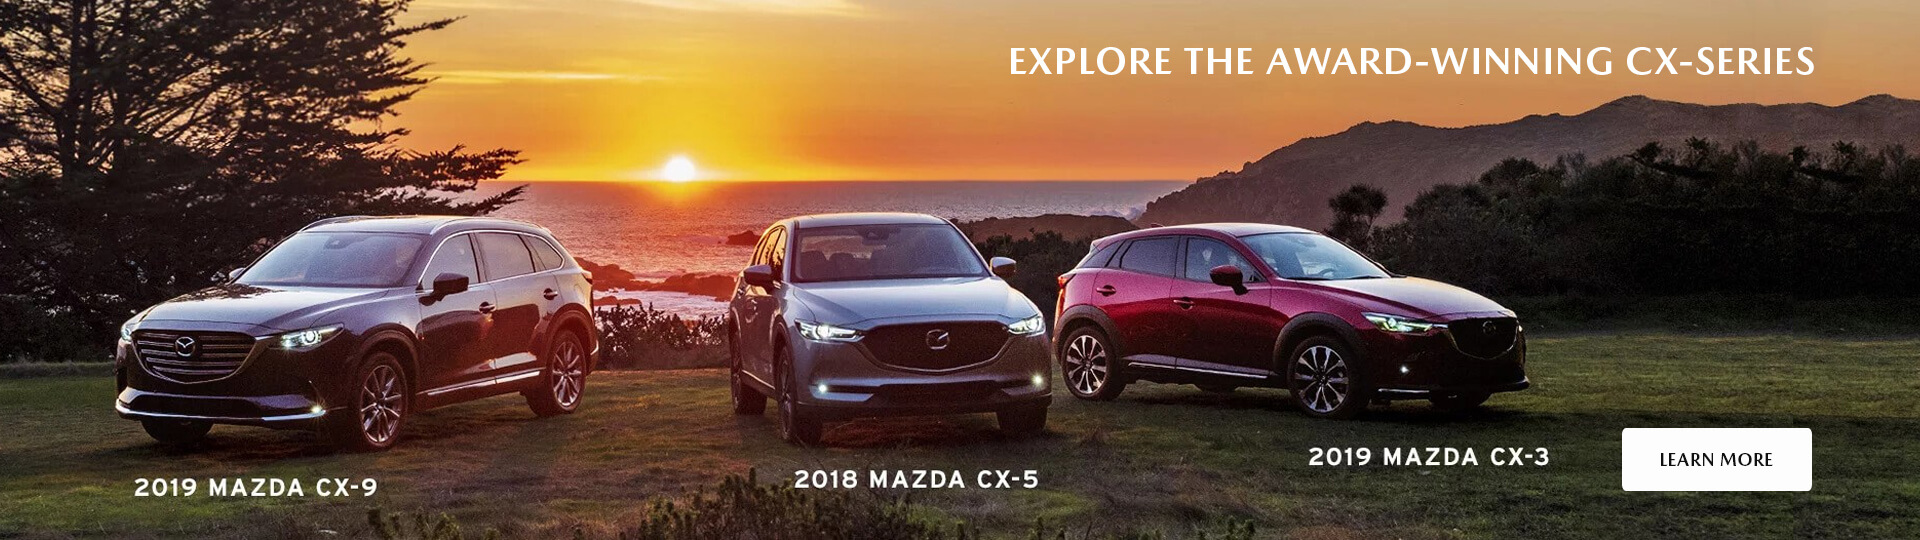 The award-winning Mazda CX-9, Mazda CX-5 and Mazda CX-3. All the SUV in the CX-Series are engineered by artisans with a passion for driving and immaculate attention to detail.